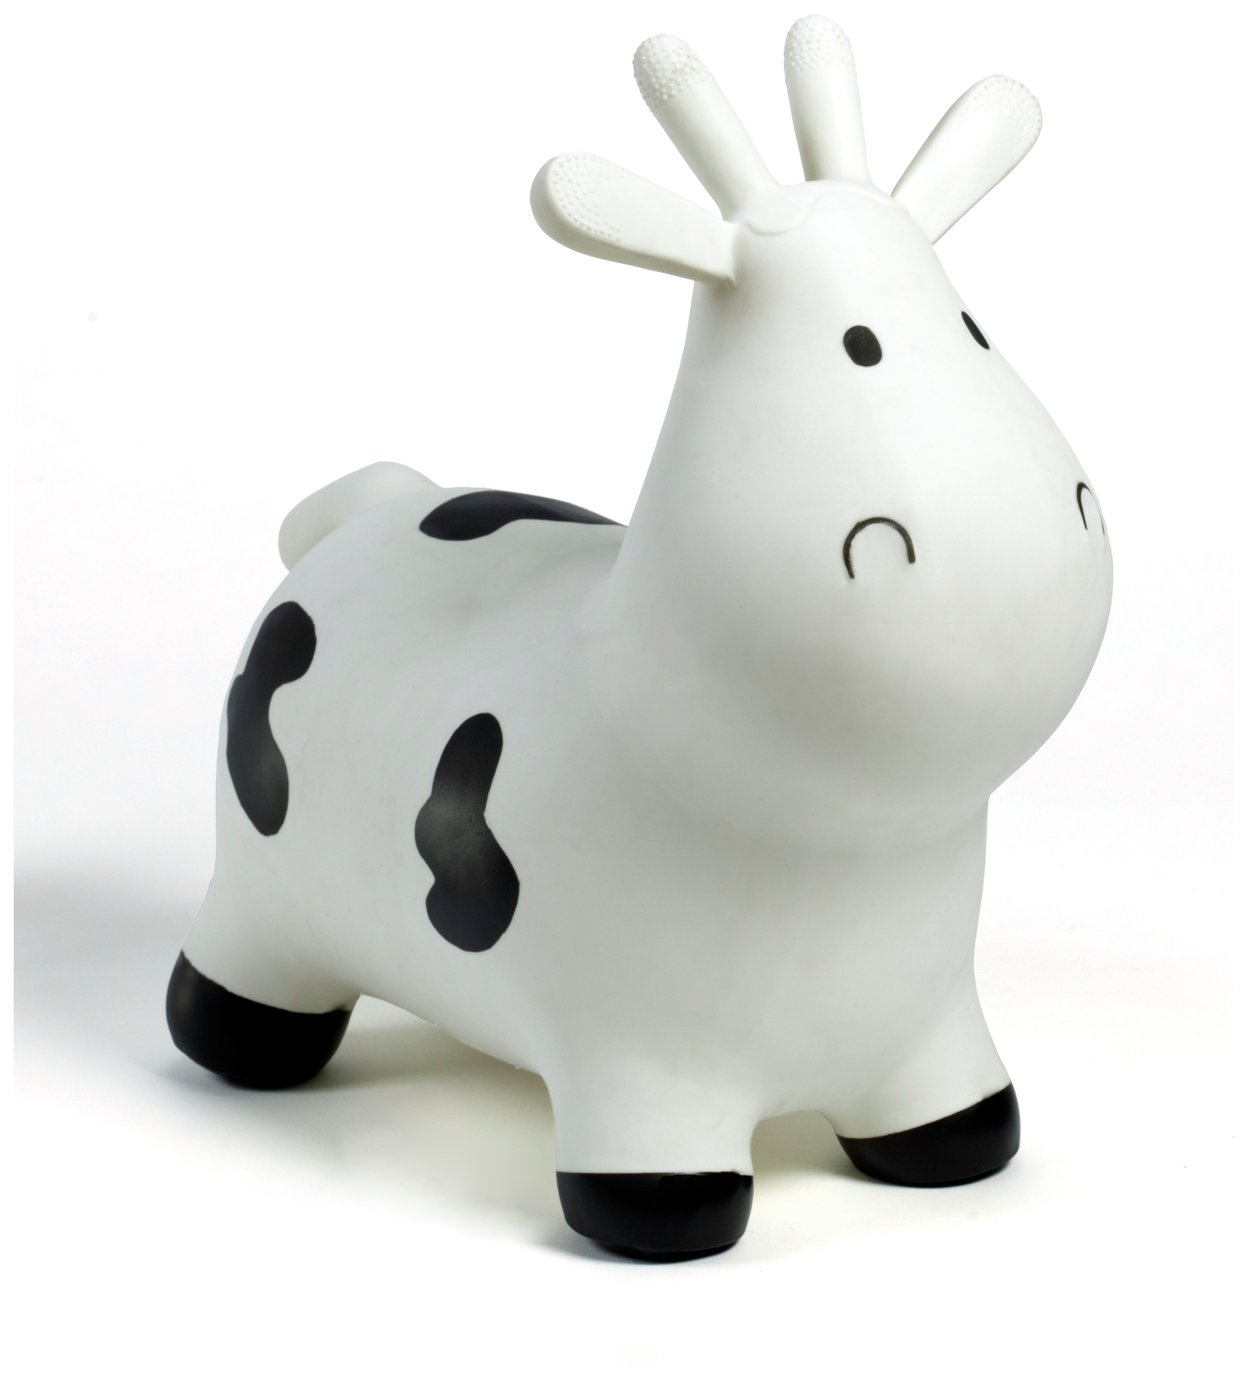 HappyHopperz Inflatable Bouncer Cow   White.